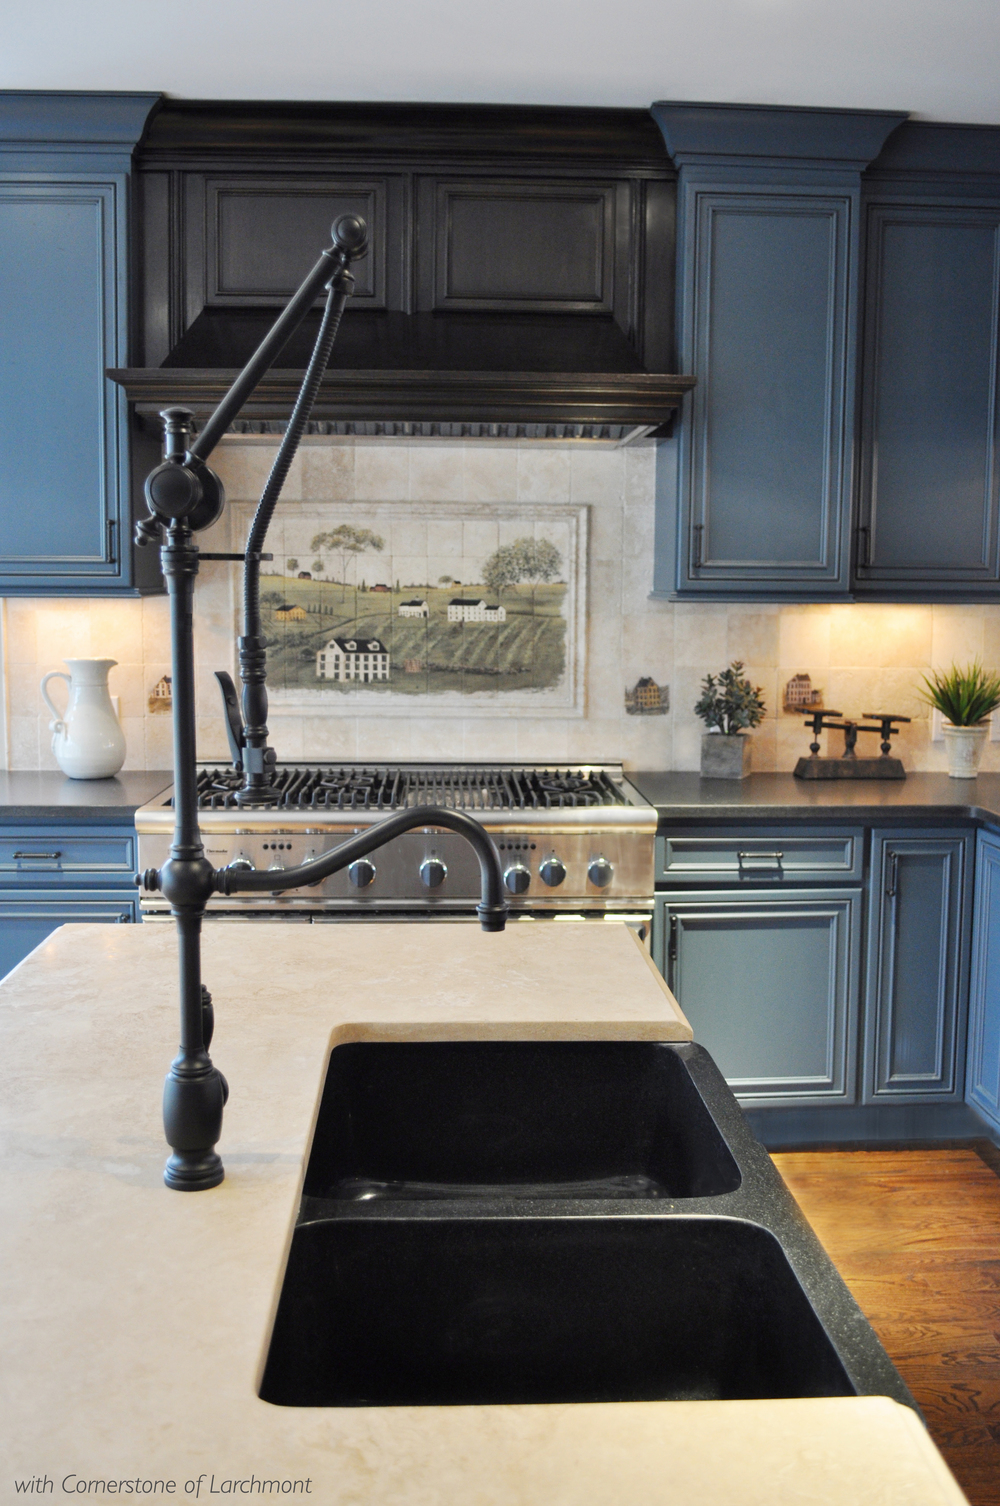 Kim Annick Mitchell_Interior Designer_Contemporary Country Kitchen_Pull-down Faucet_Travertine Countertop_Granite Double Sink.jpg